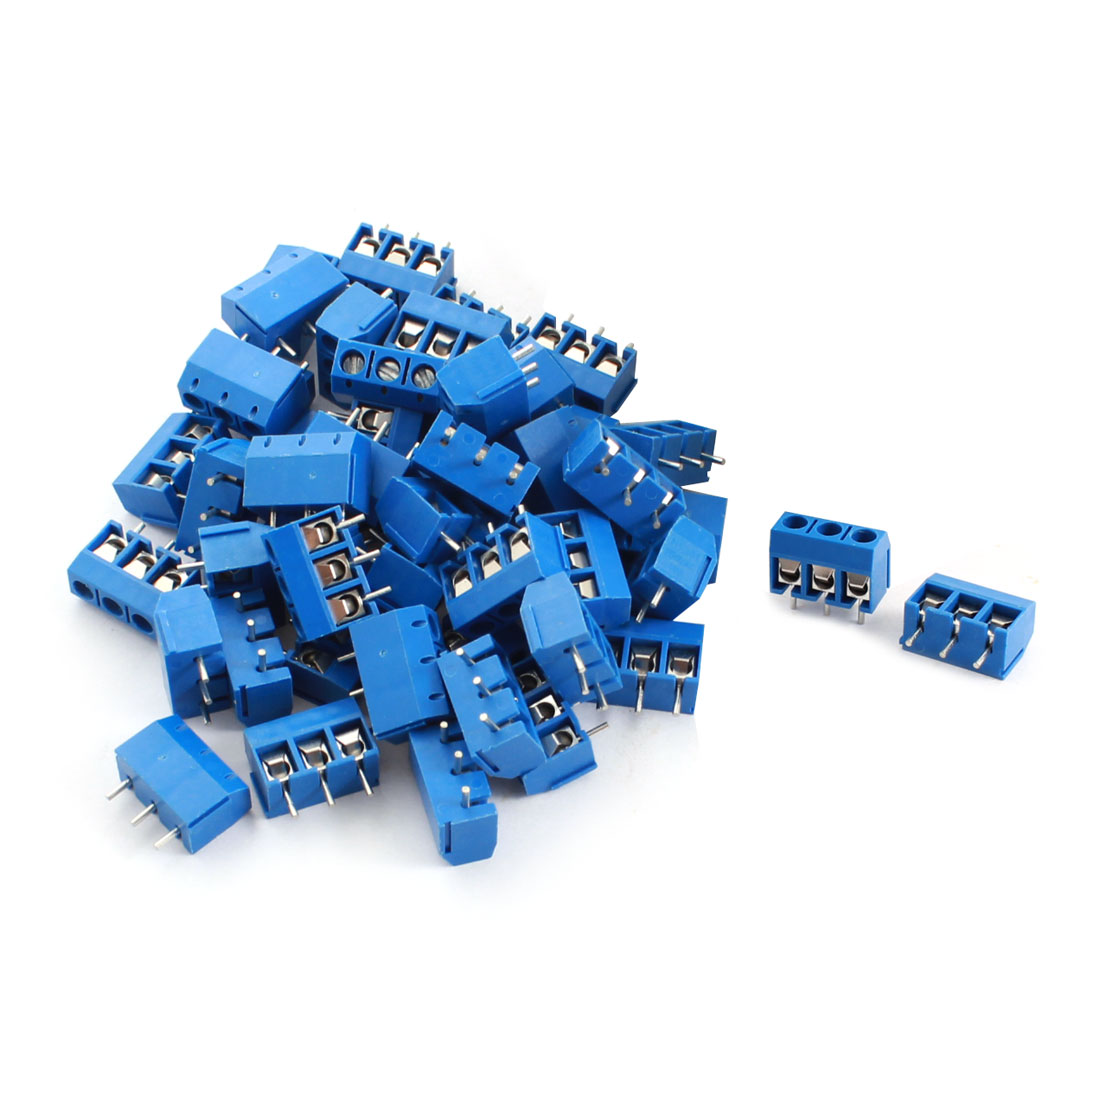 50Pcs 3 Pin 5.08mm Pitch PCB Board Mount Screw Terminal Block 12A 300V Blue